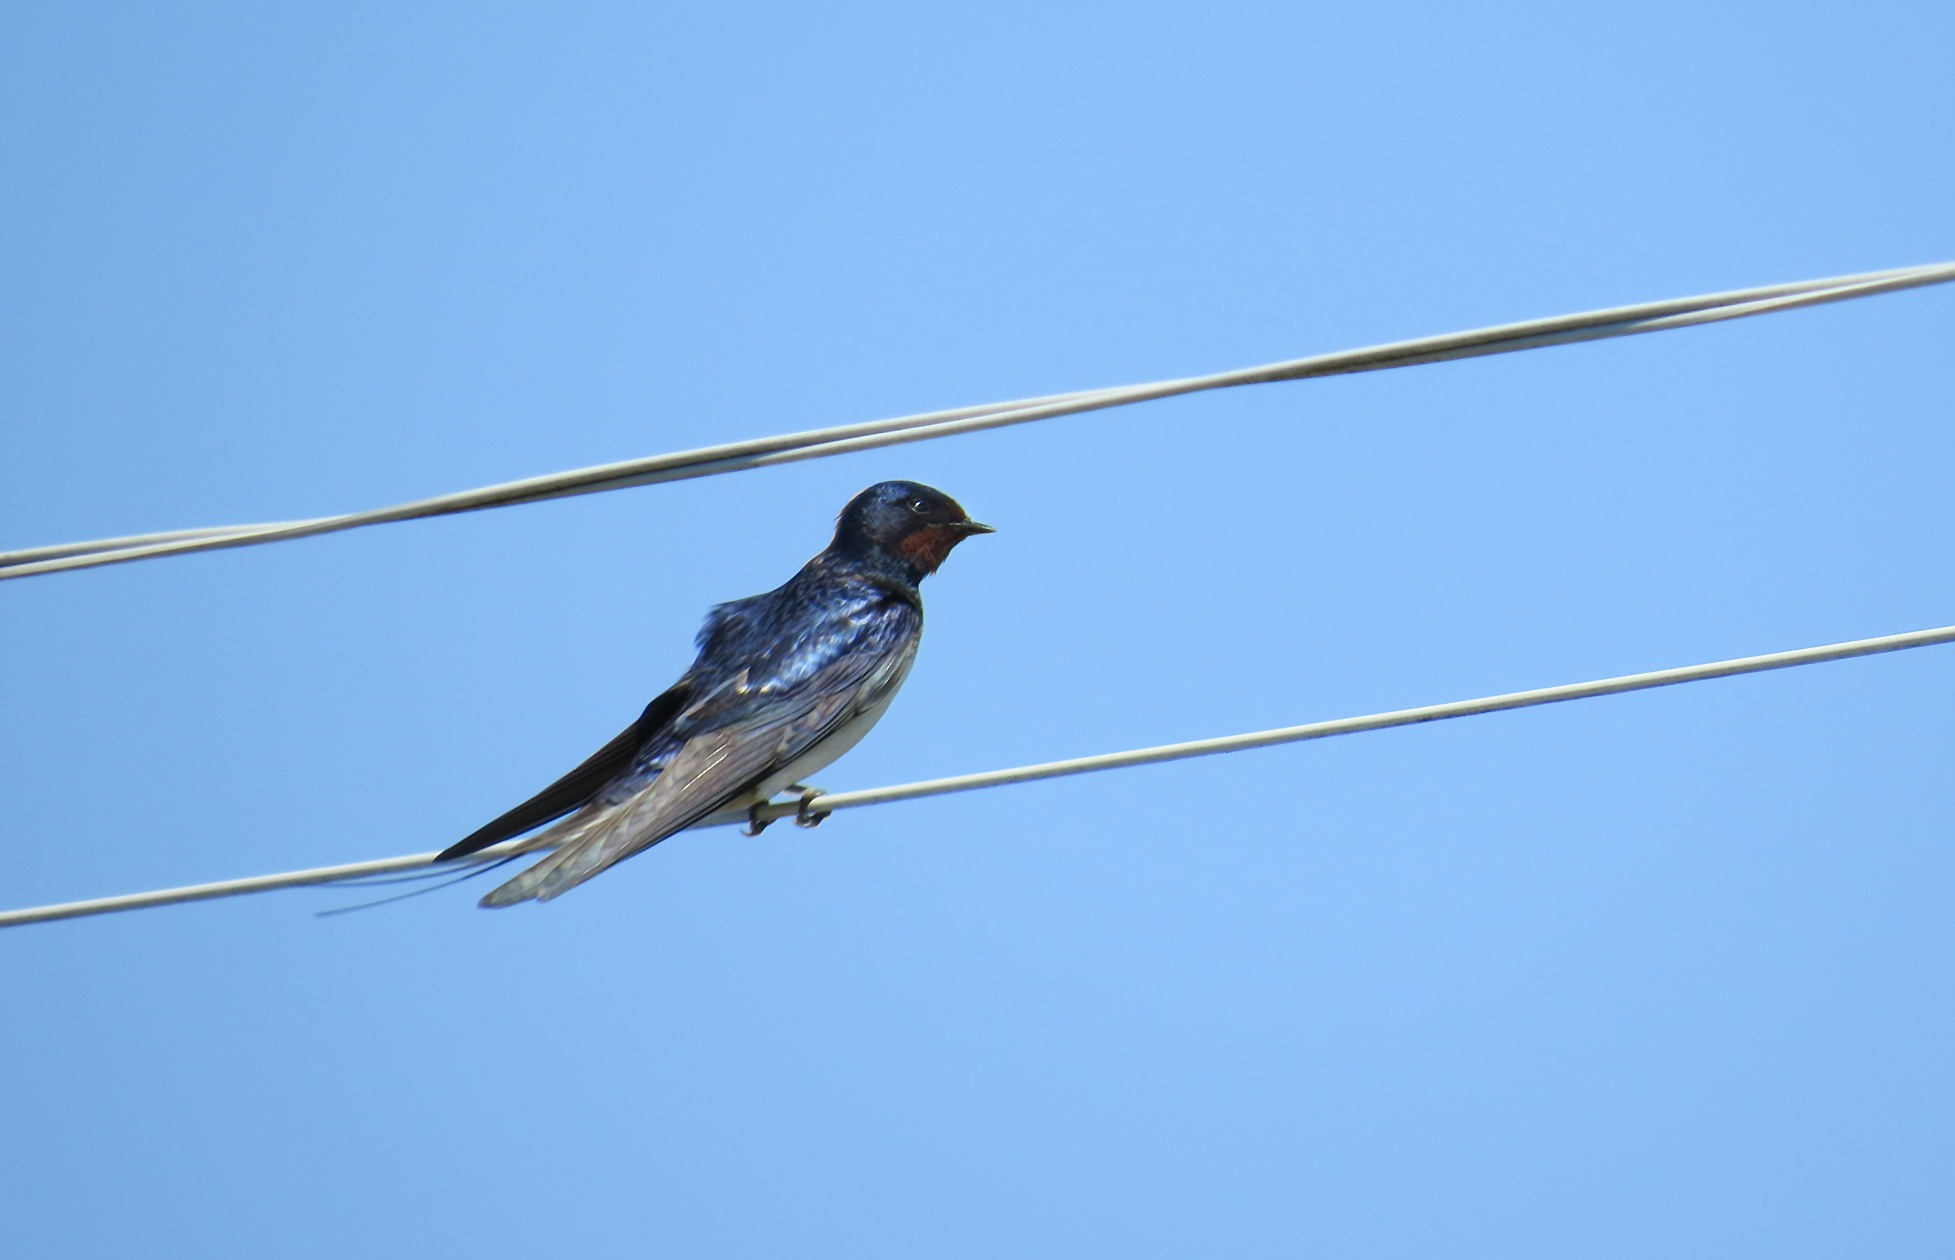 Swallow by susanne.m.andersson.92